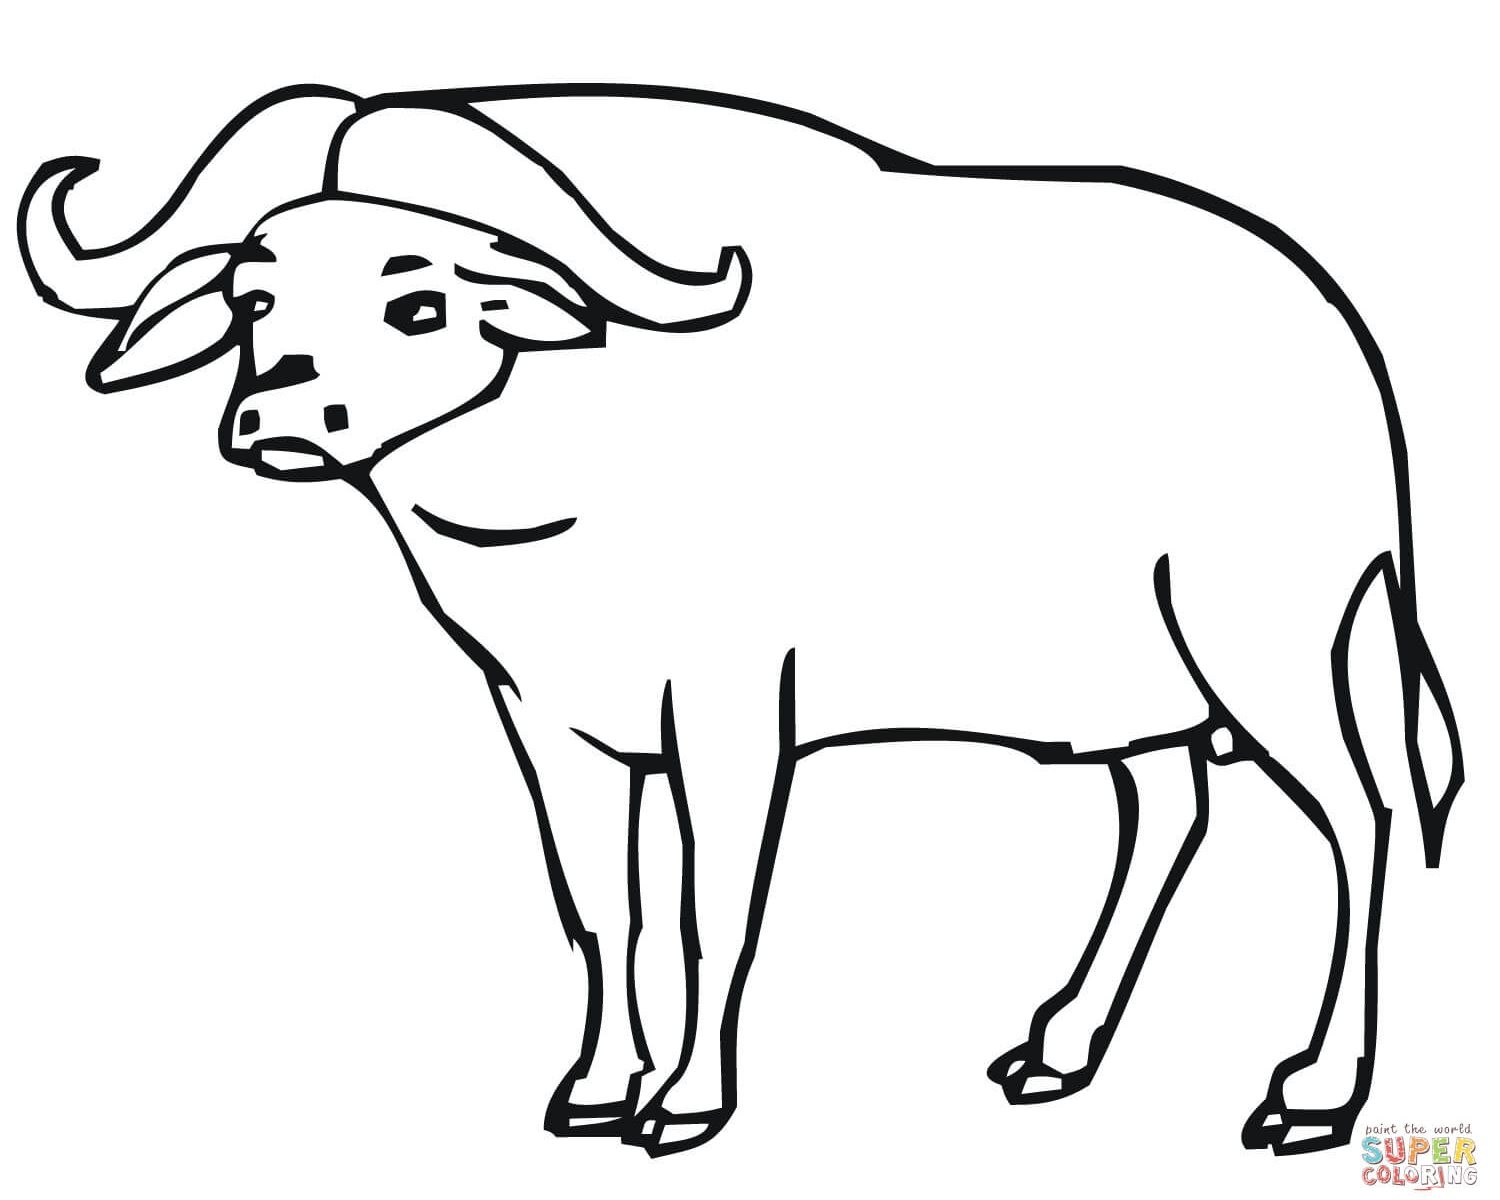 1500x1200 Water Buffalo Coloring Pages To Print Coloring For Kids